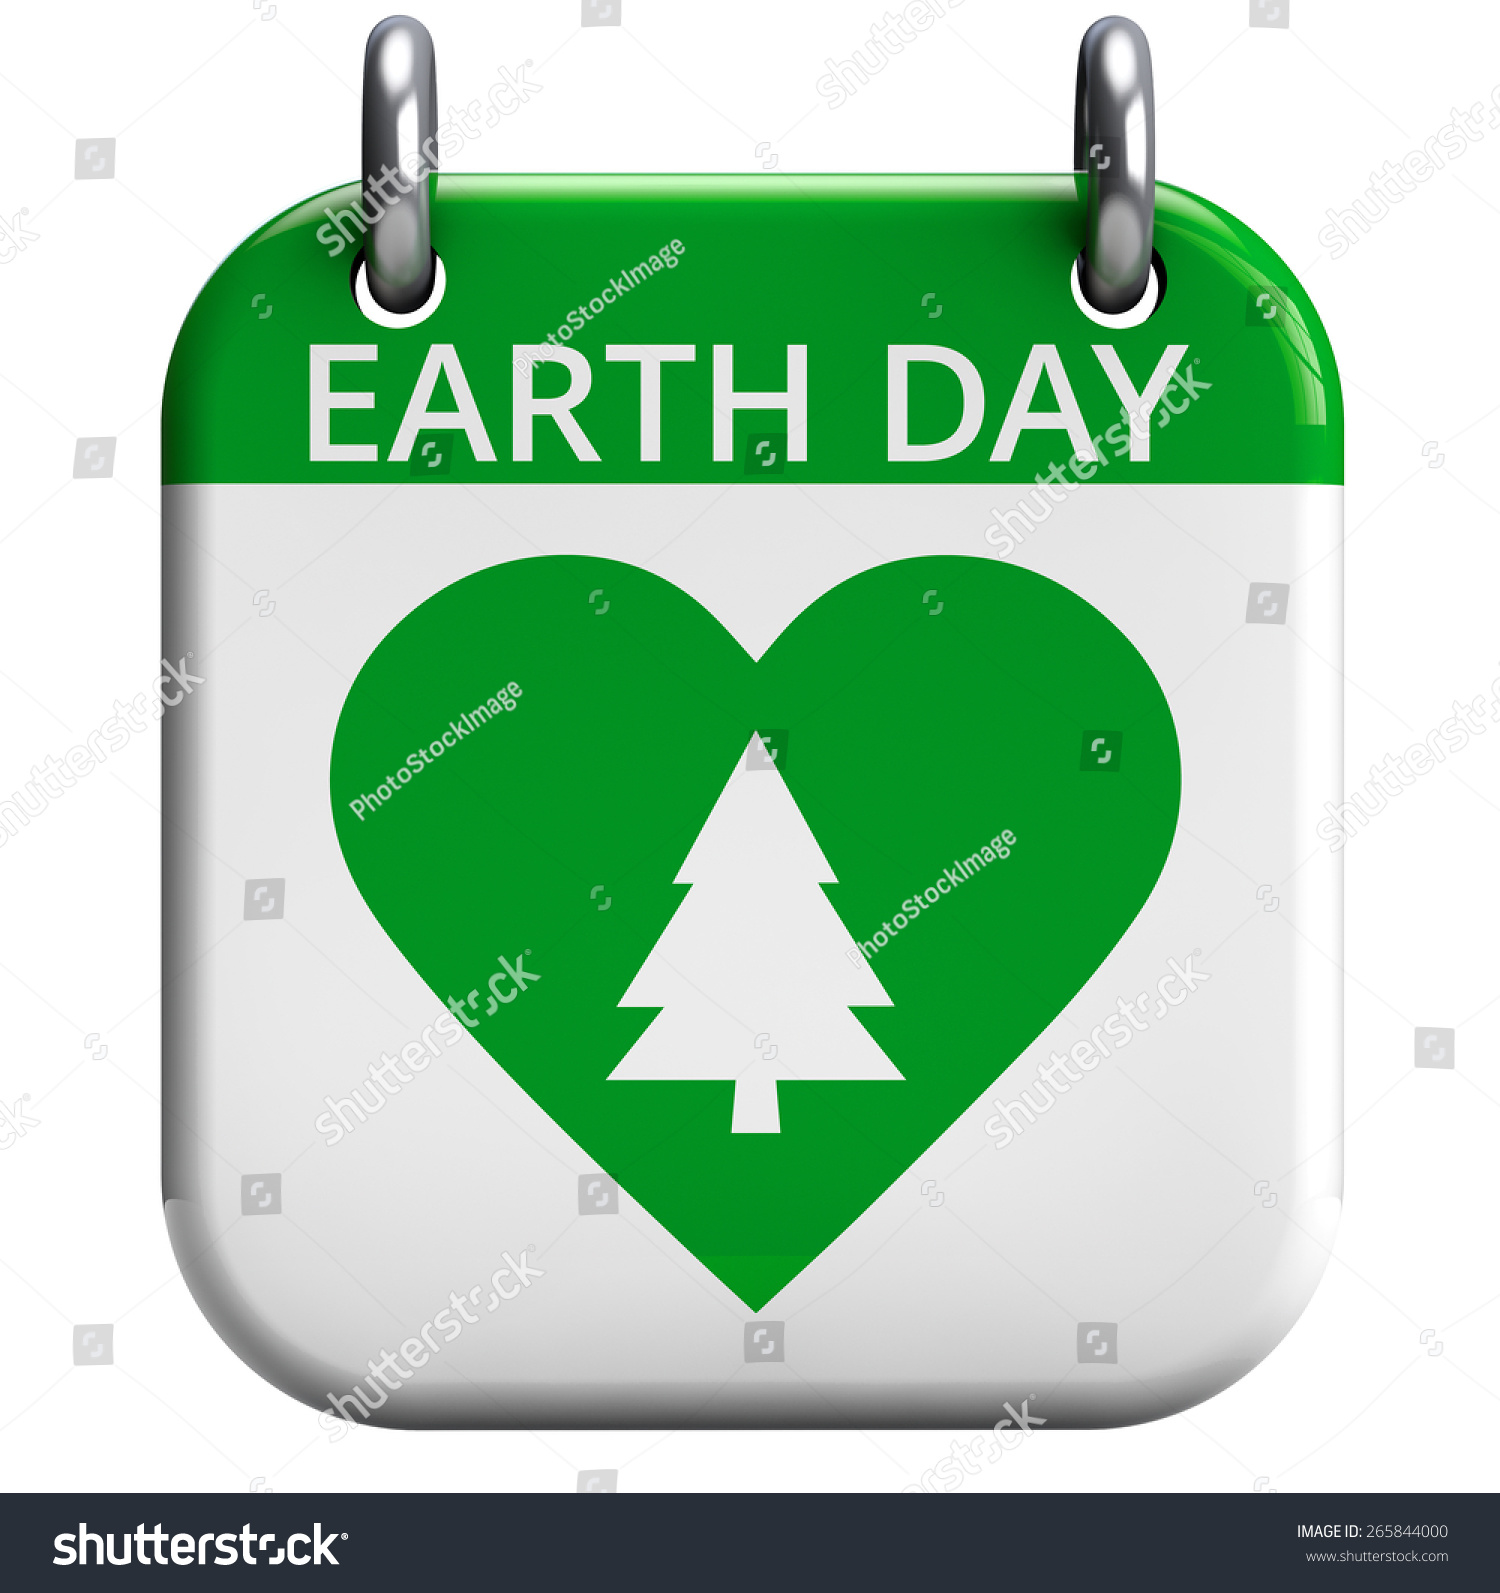 Earth day april 22 calendar date stock illustration 265844000 earth day april 22 calendar date symbol icon isolated on white and clipping path included buycottarizona